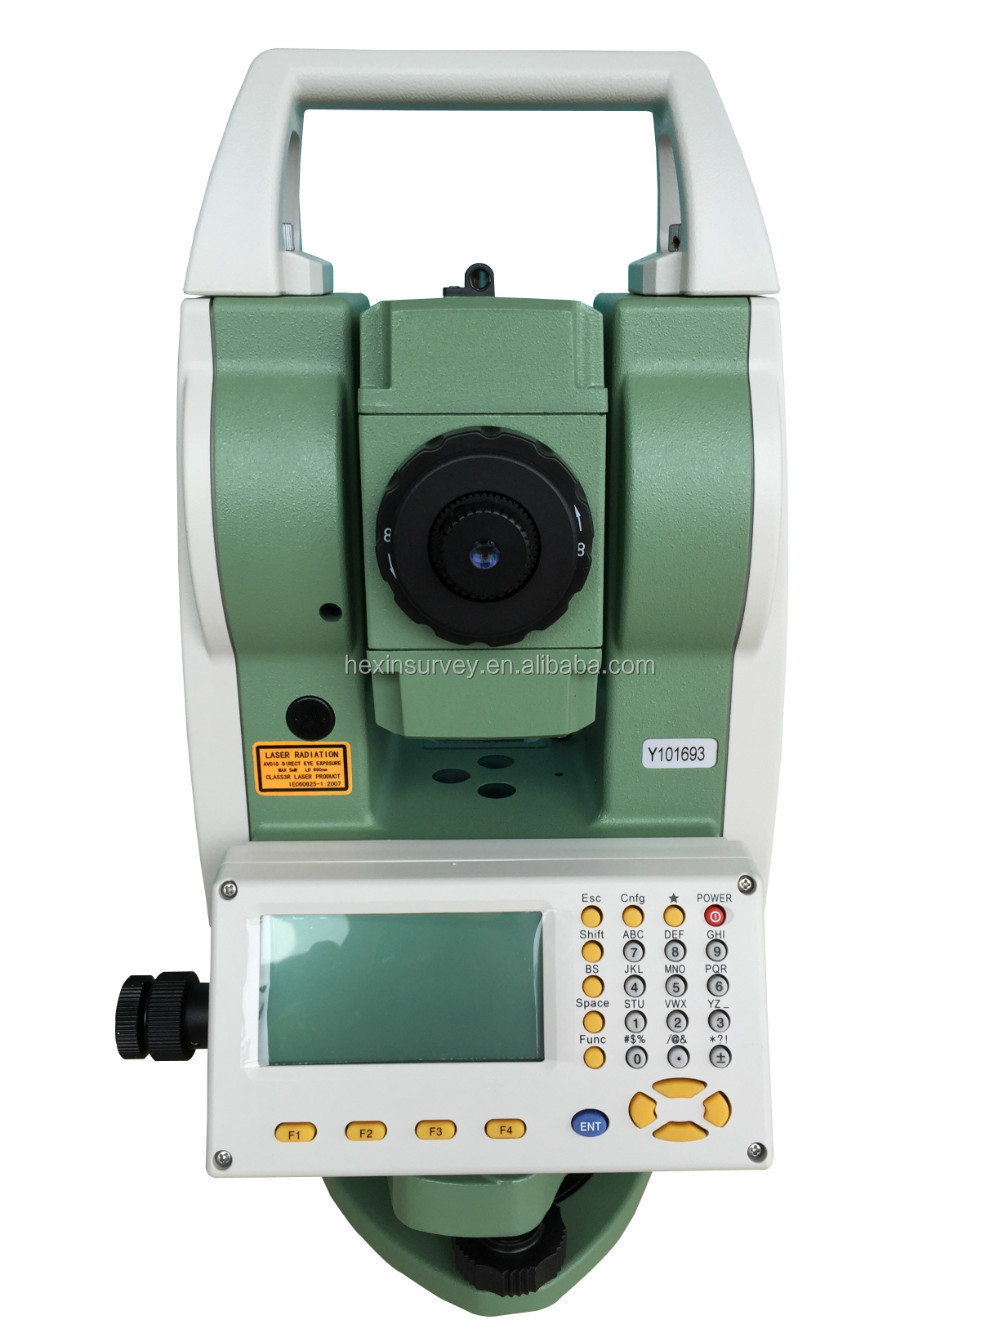 FOIF total station OTS685-R500 500m reflectorless